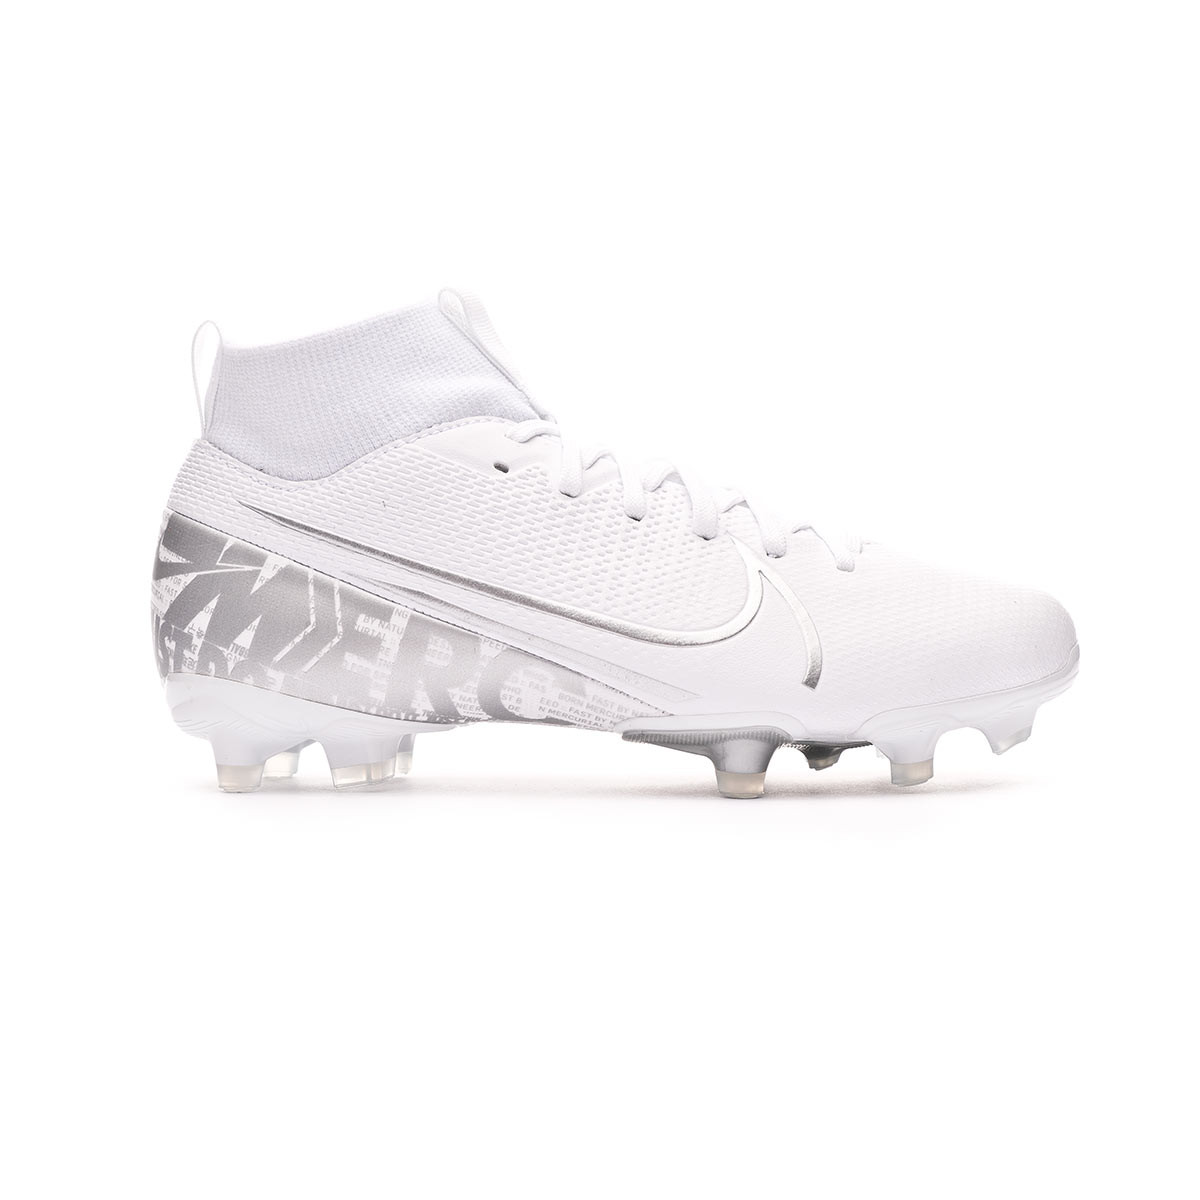 Chaussure de foot Nike Mercurial Superfly VII Academy FGMG Enfant